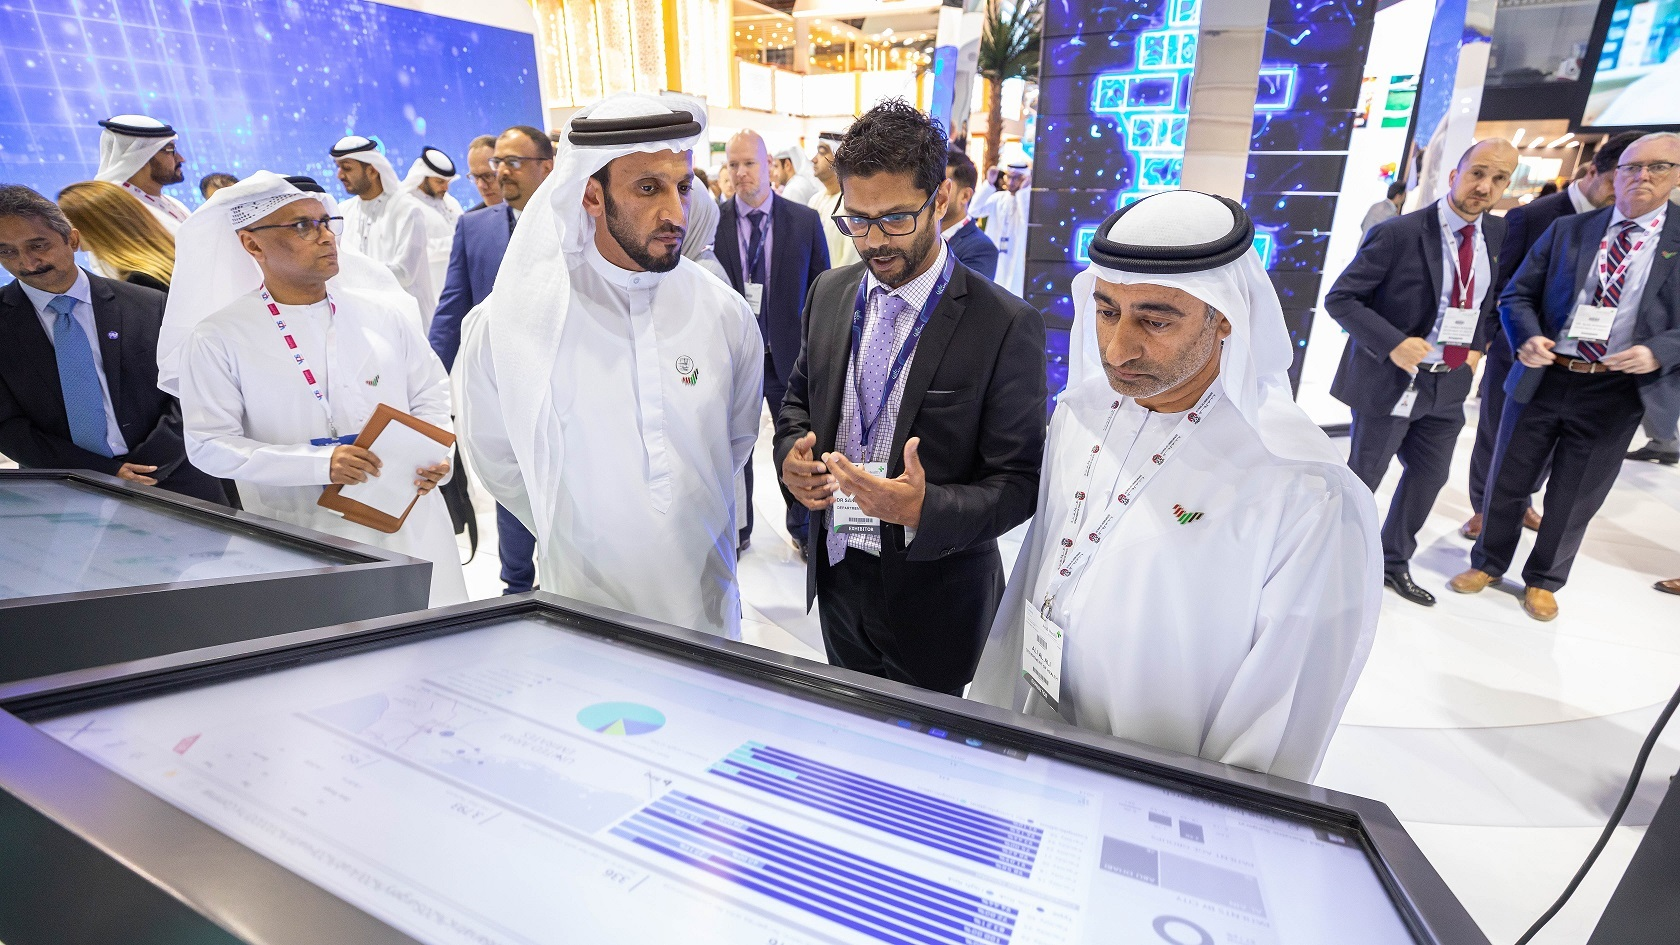 Healthcare App Set To Bring Medical Care Closer To Patients In Abu Dhabi